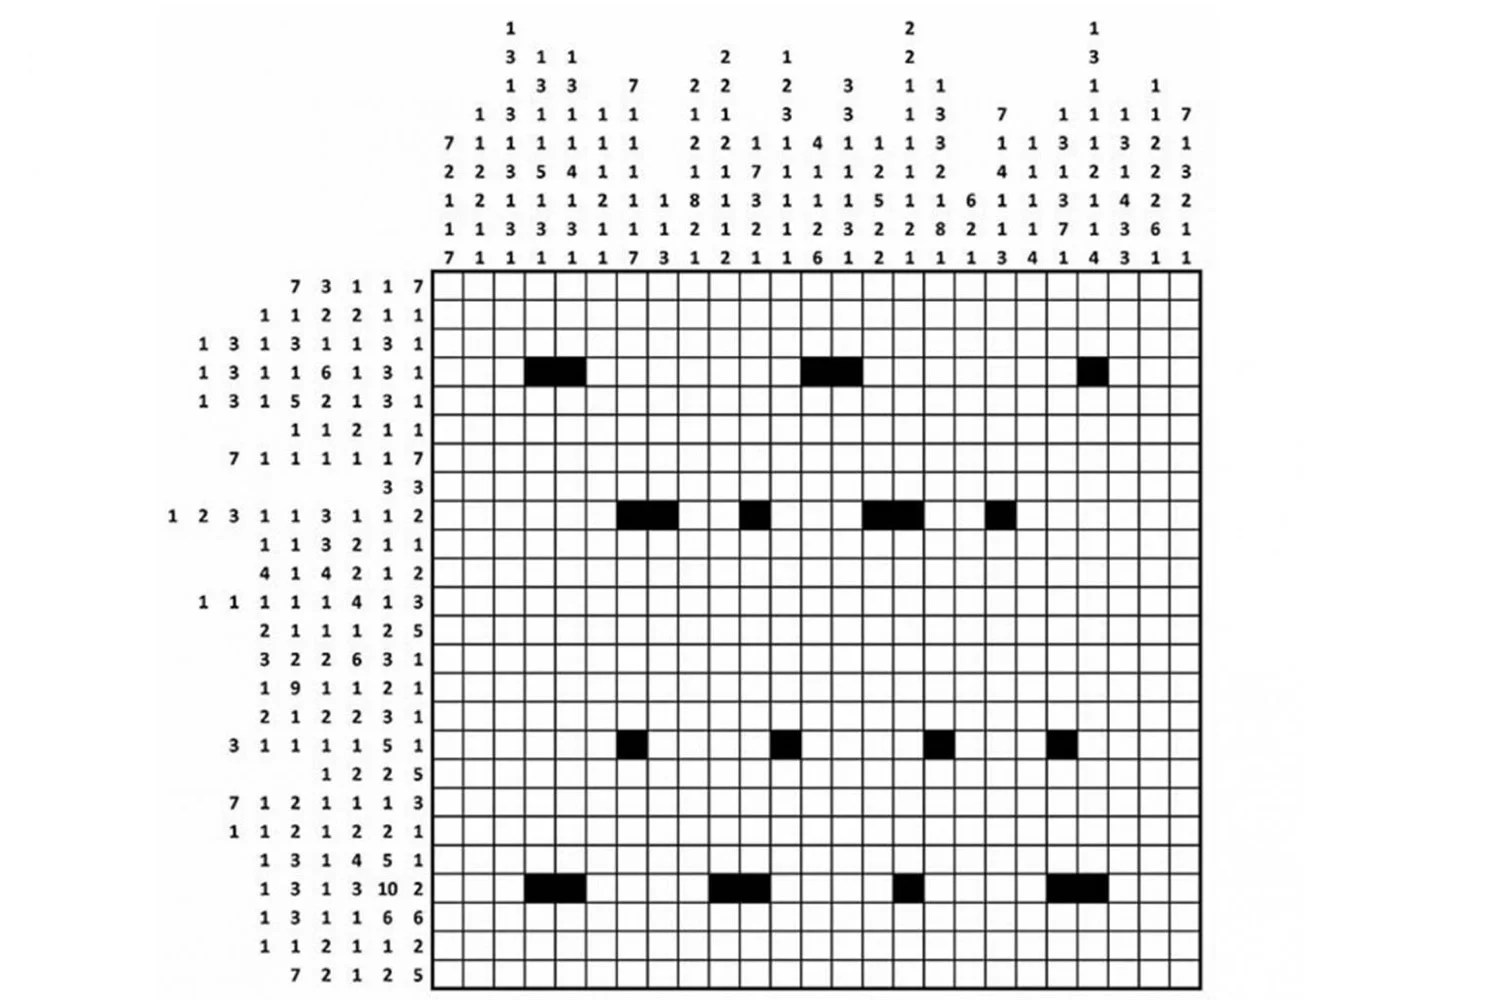 GCHQ releases answers to Christmas puzzle... which NOBODY